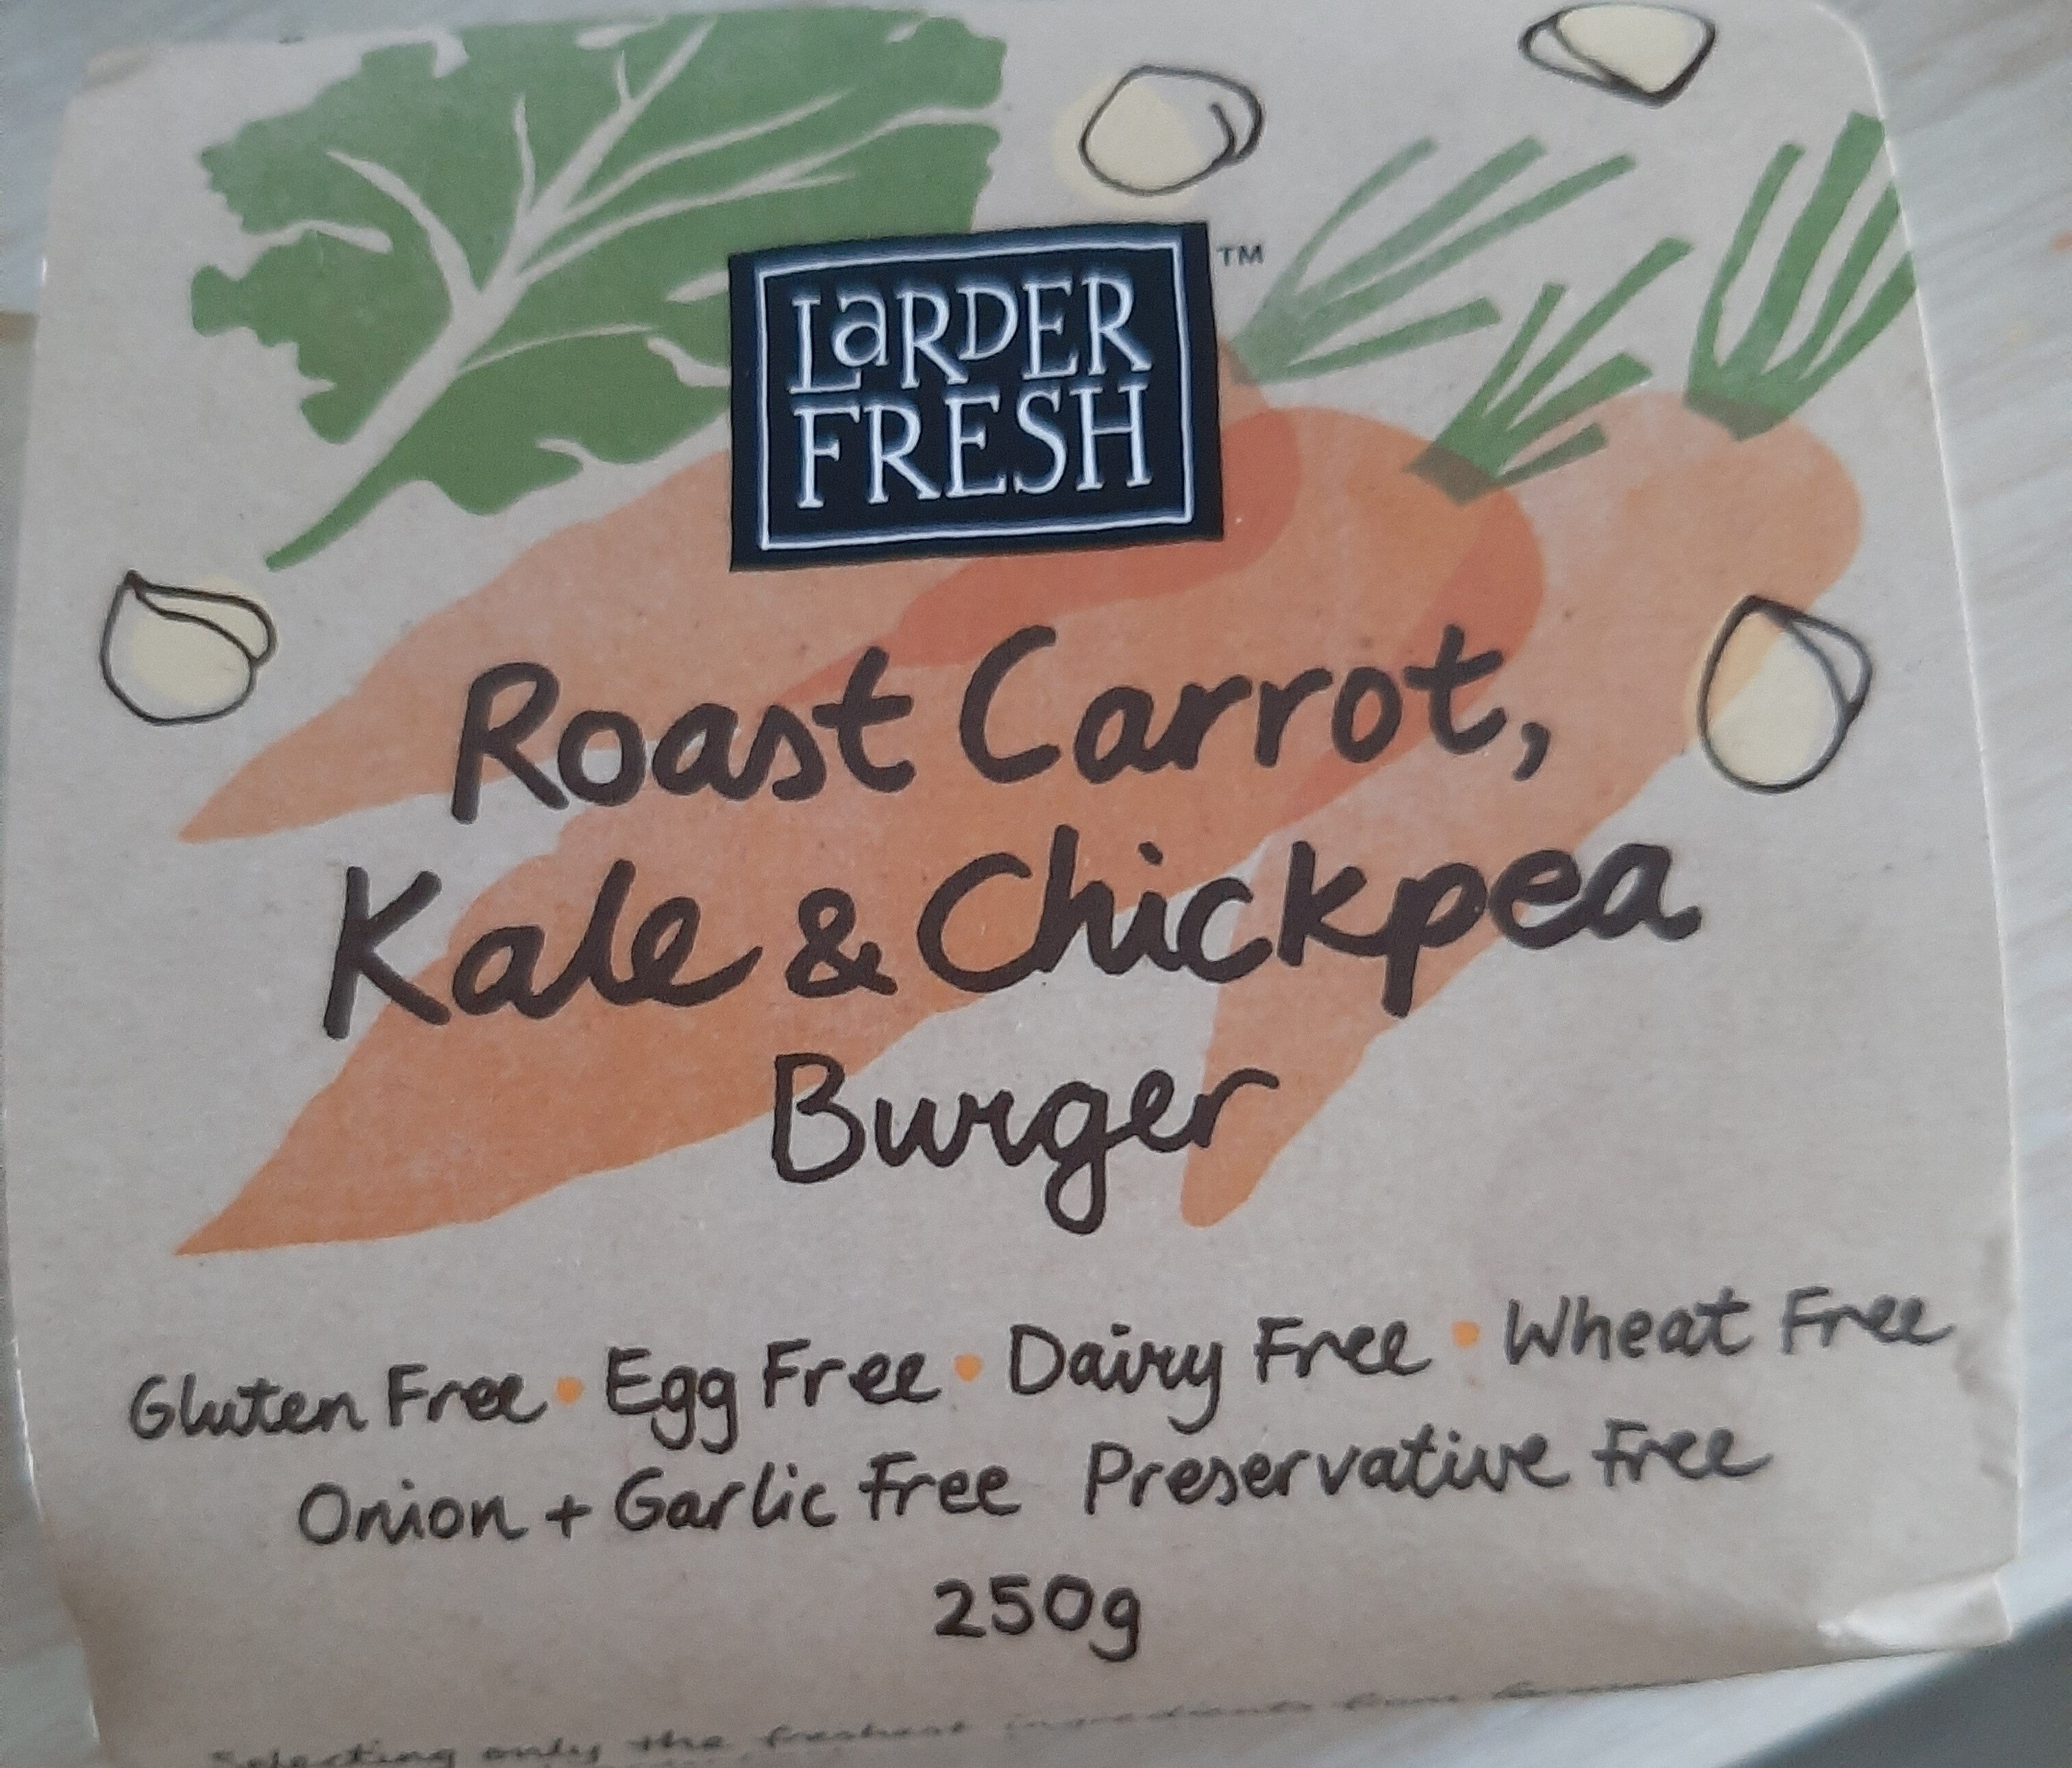 roast carrot, kale and chickpea burger - Product - en